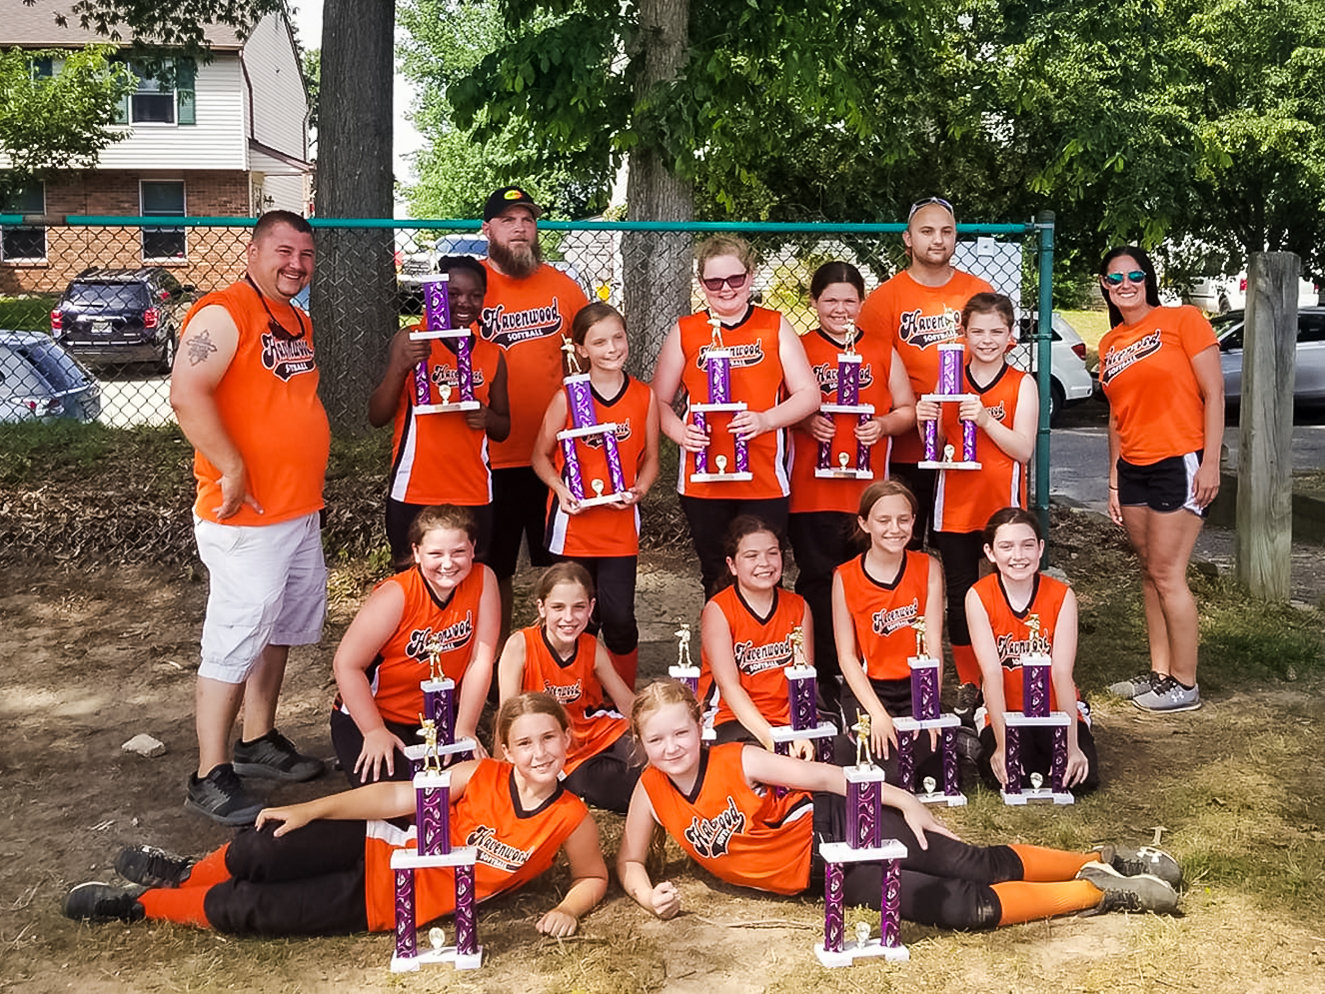 The Havenwood Heat defeated the Havenwood Power twice in the championship doubleheader of the double-elimination tournament to win the 10U county crown.